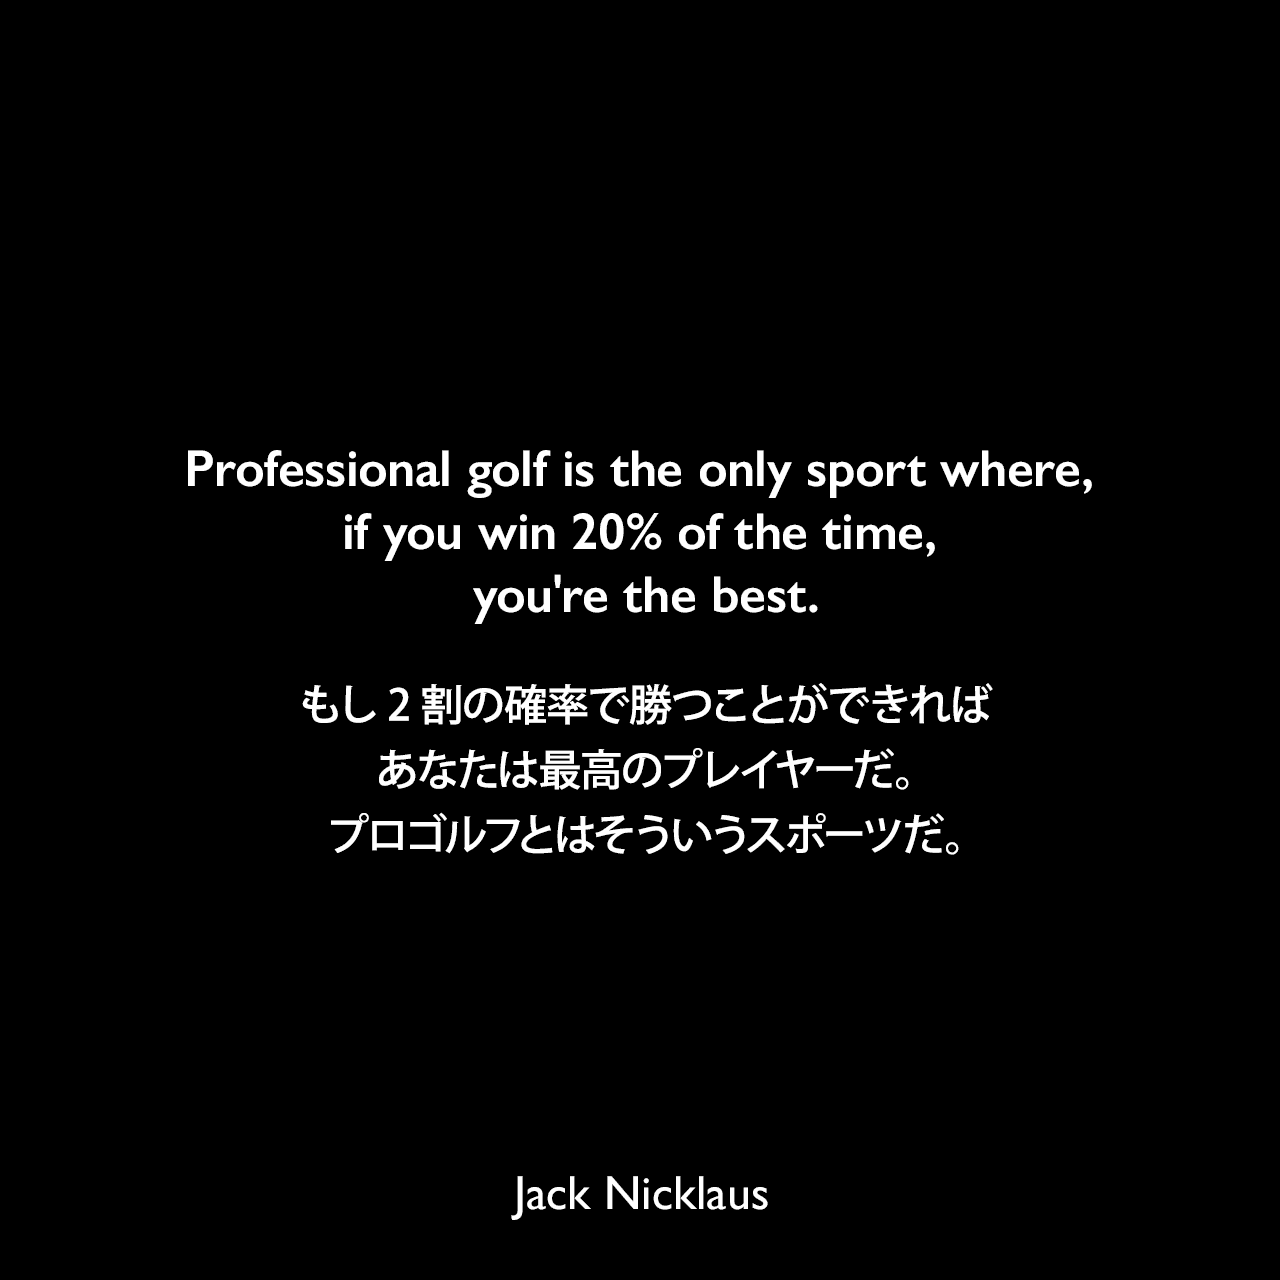 Professional golf is the only sport where, if you win 20% of the time, you're the best.もし2割の確率で勝つことができれば、あなたは最高のプレイヤーだ。プロゴルフとはそういうスポーツだ。Jack Nicklaus